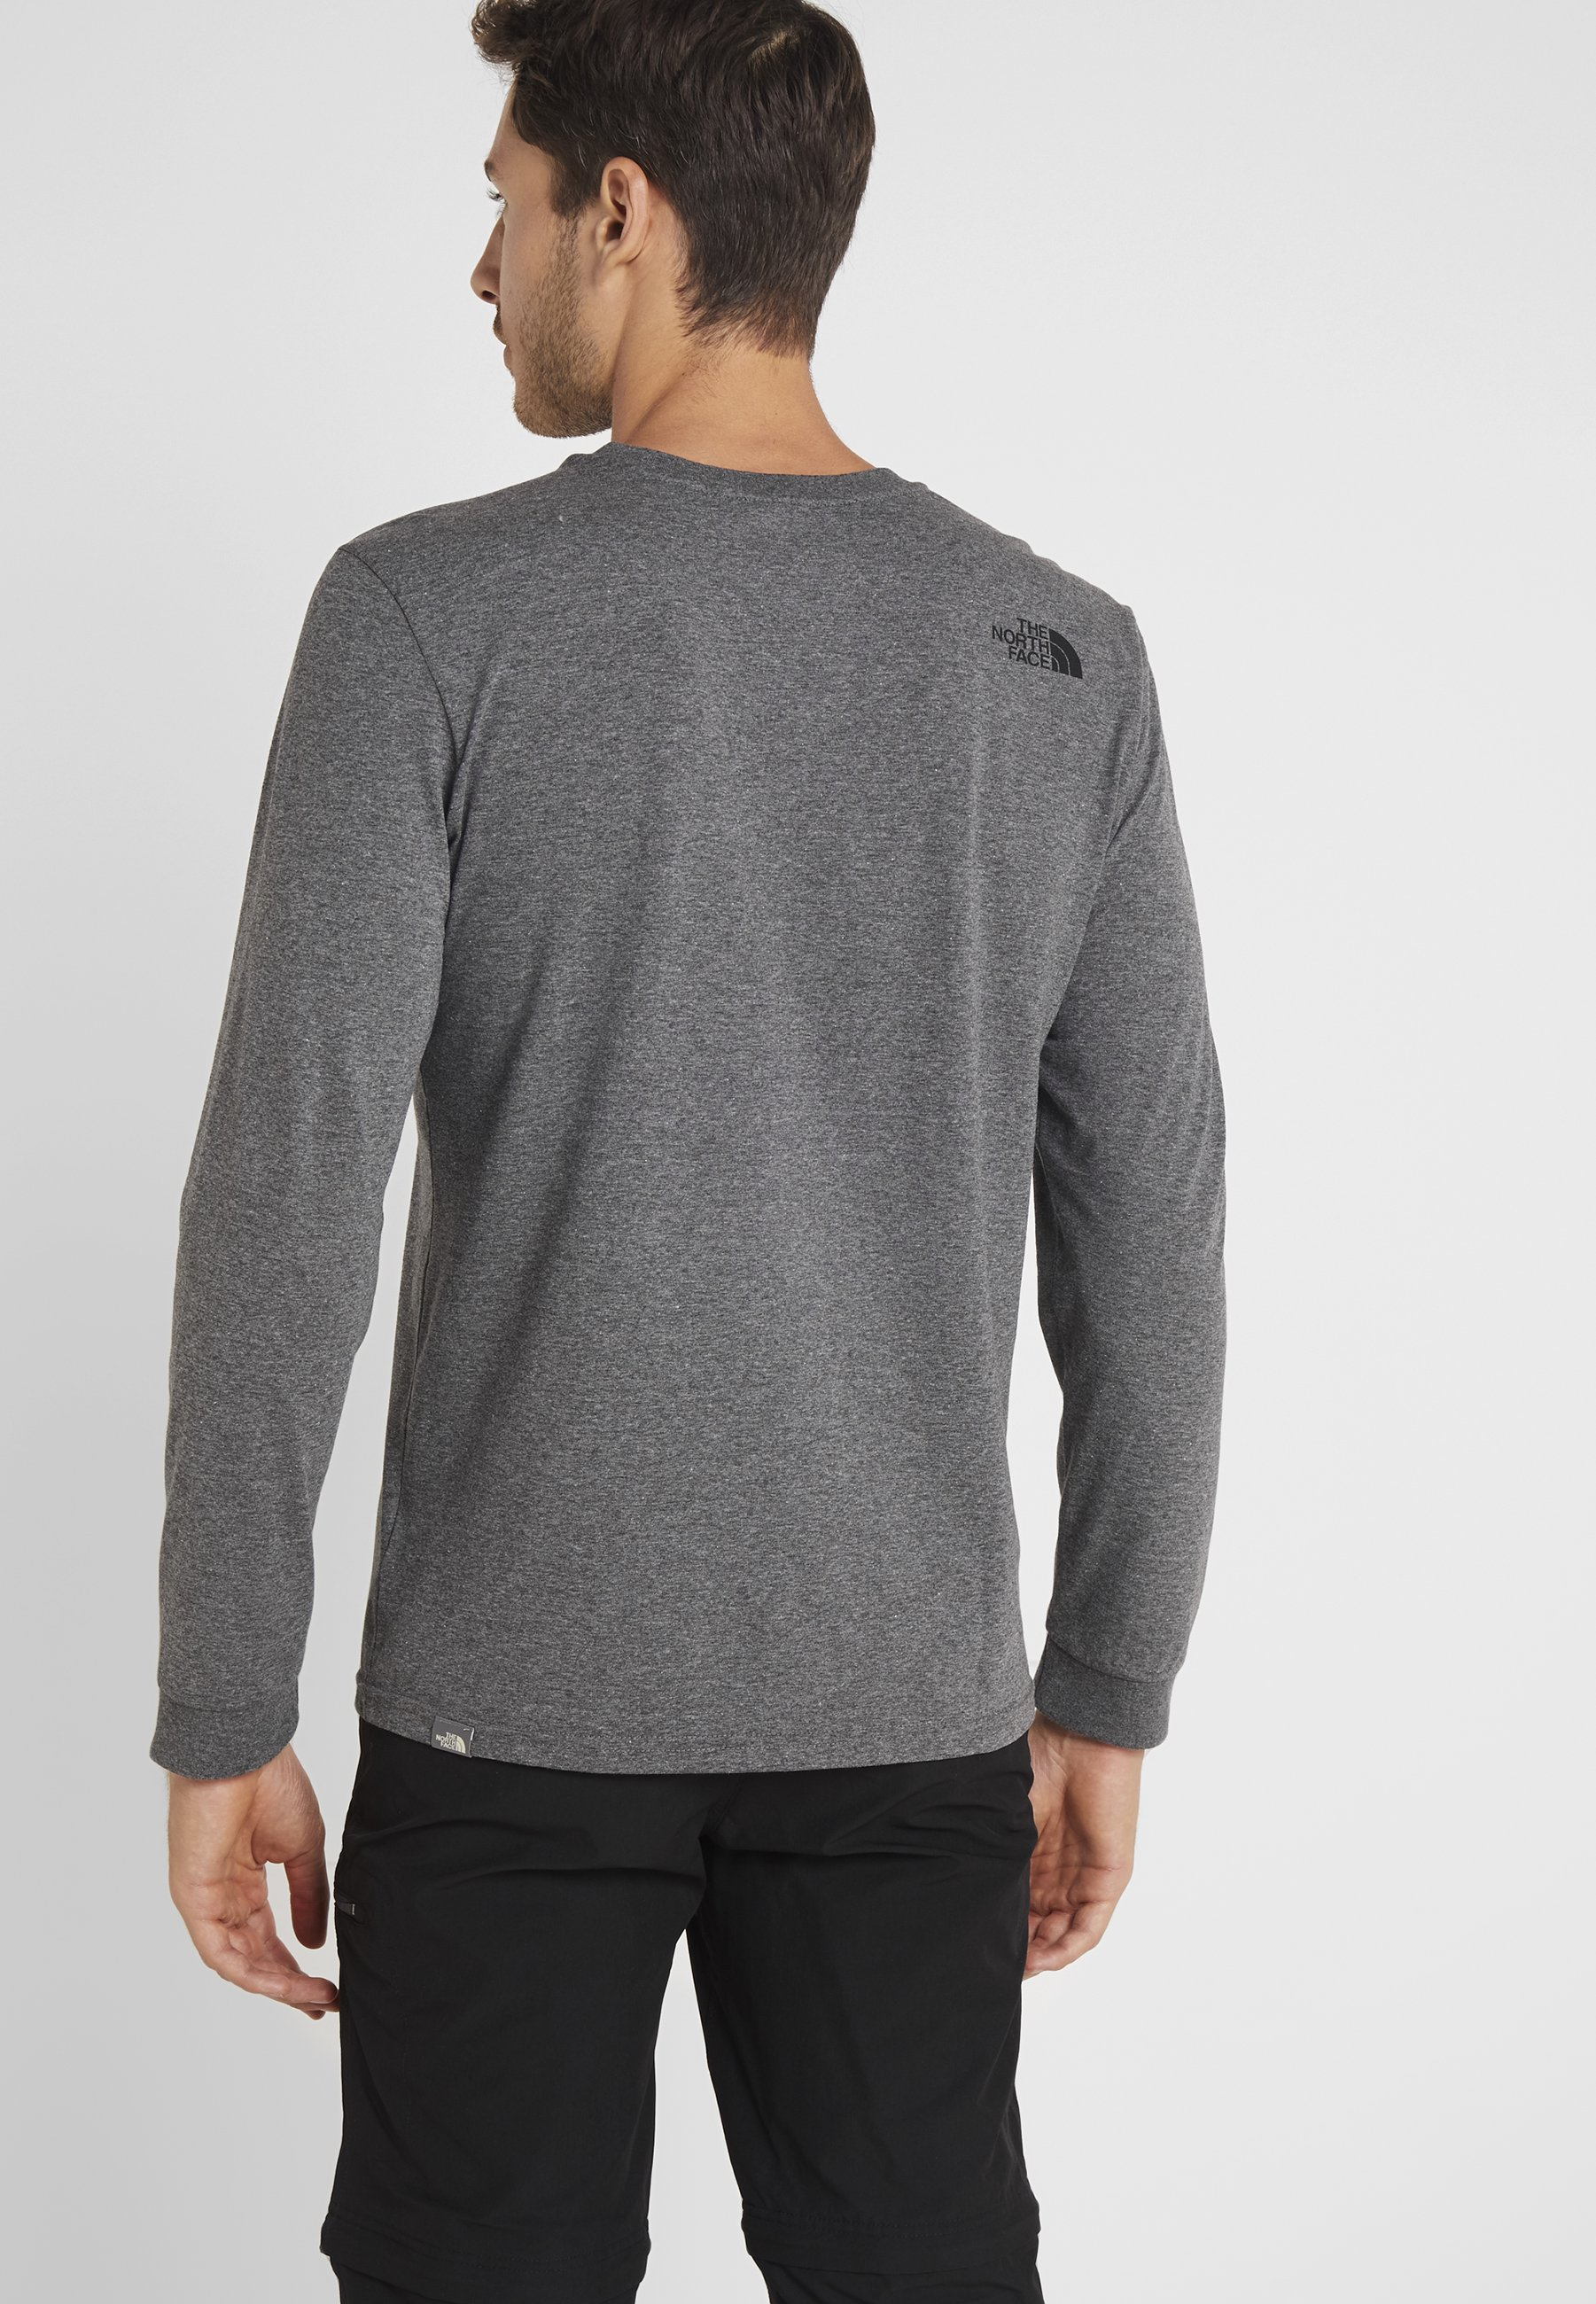 À Grey shirt Manches Face North DomeT Heather Longues Medium The Simple POkiuXZ